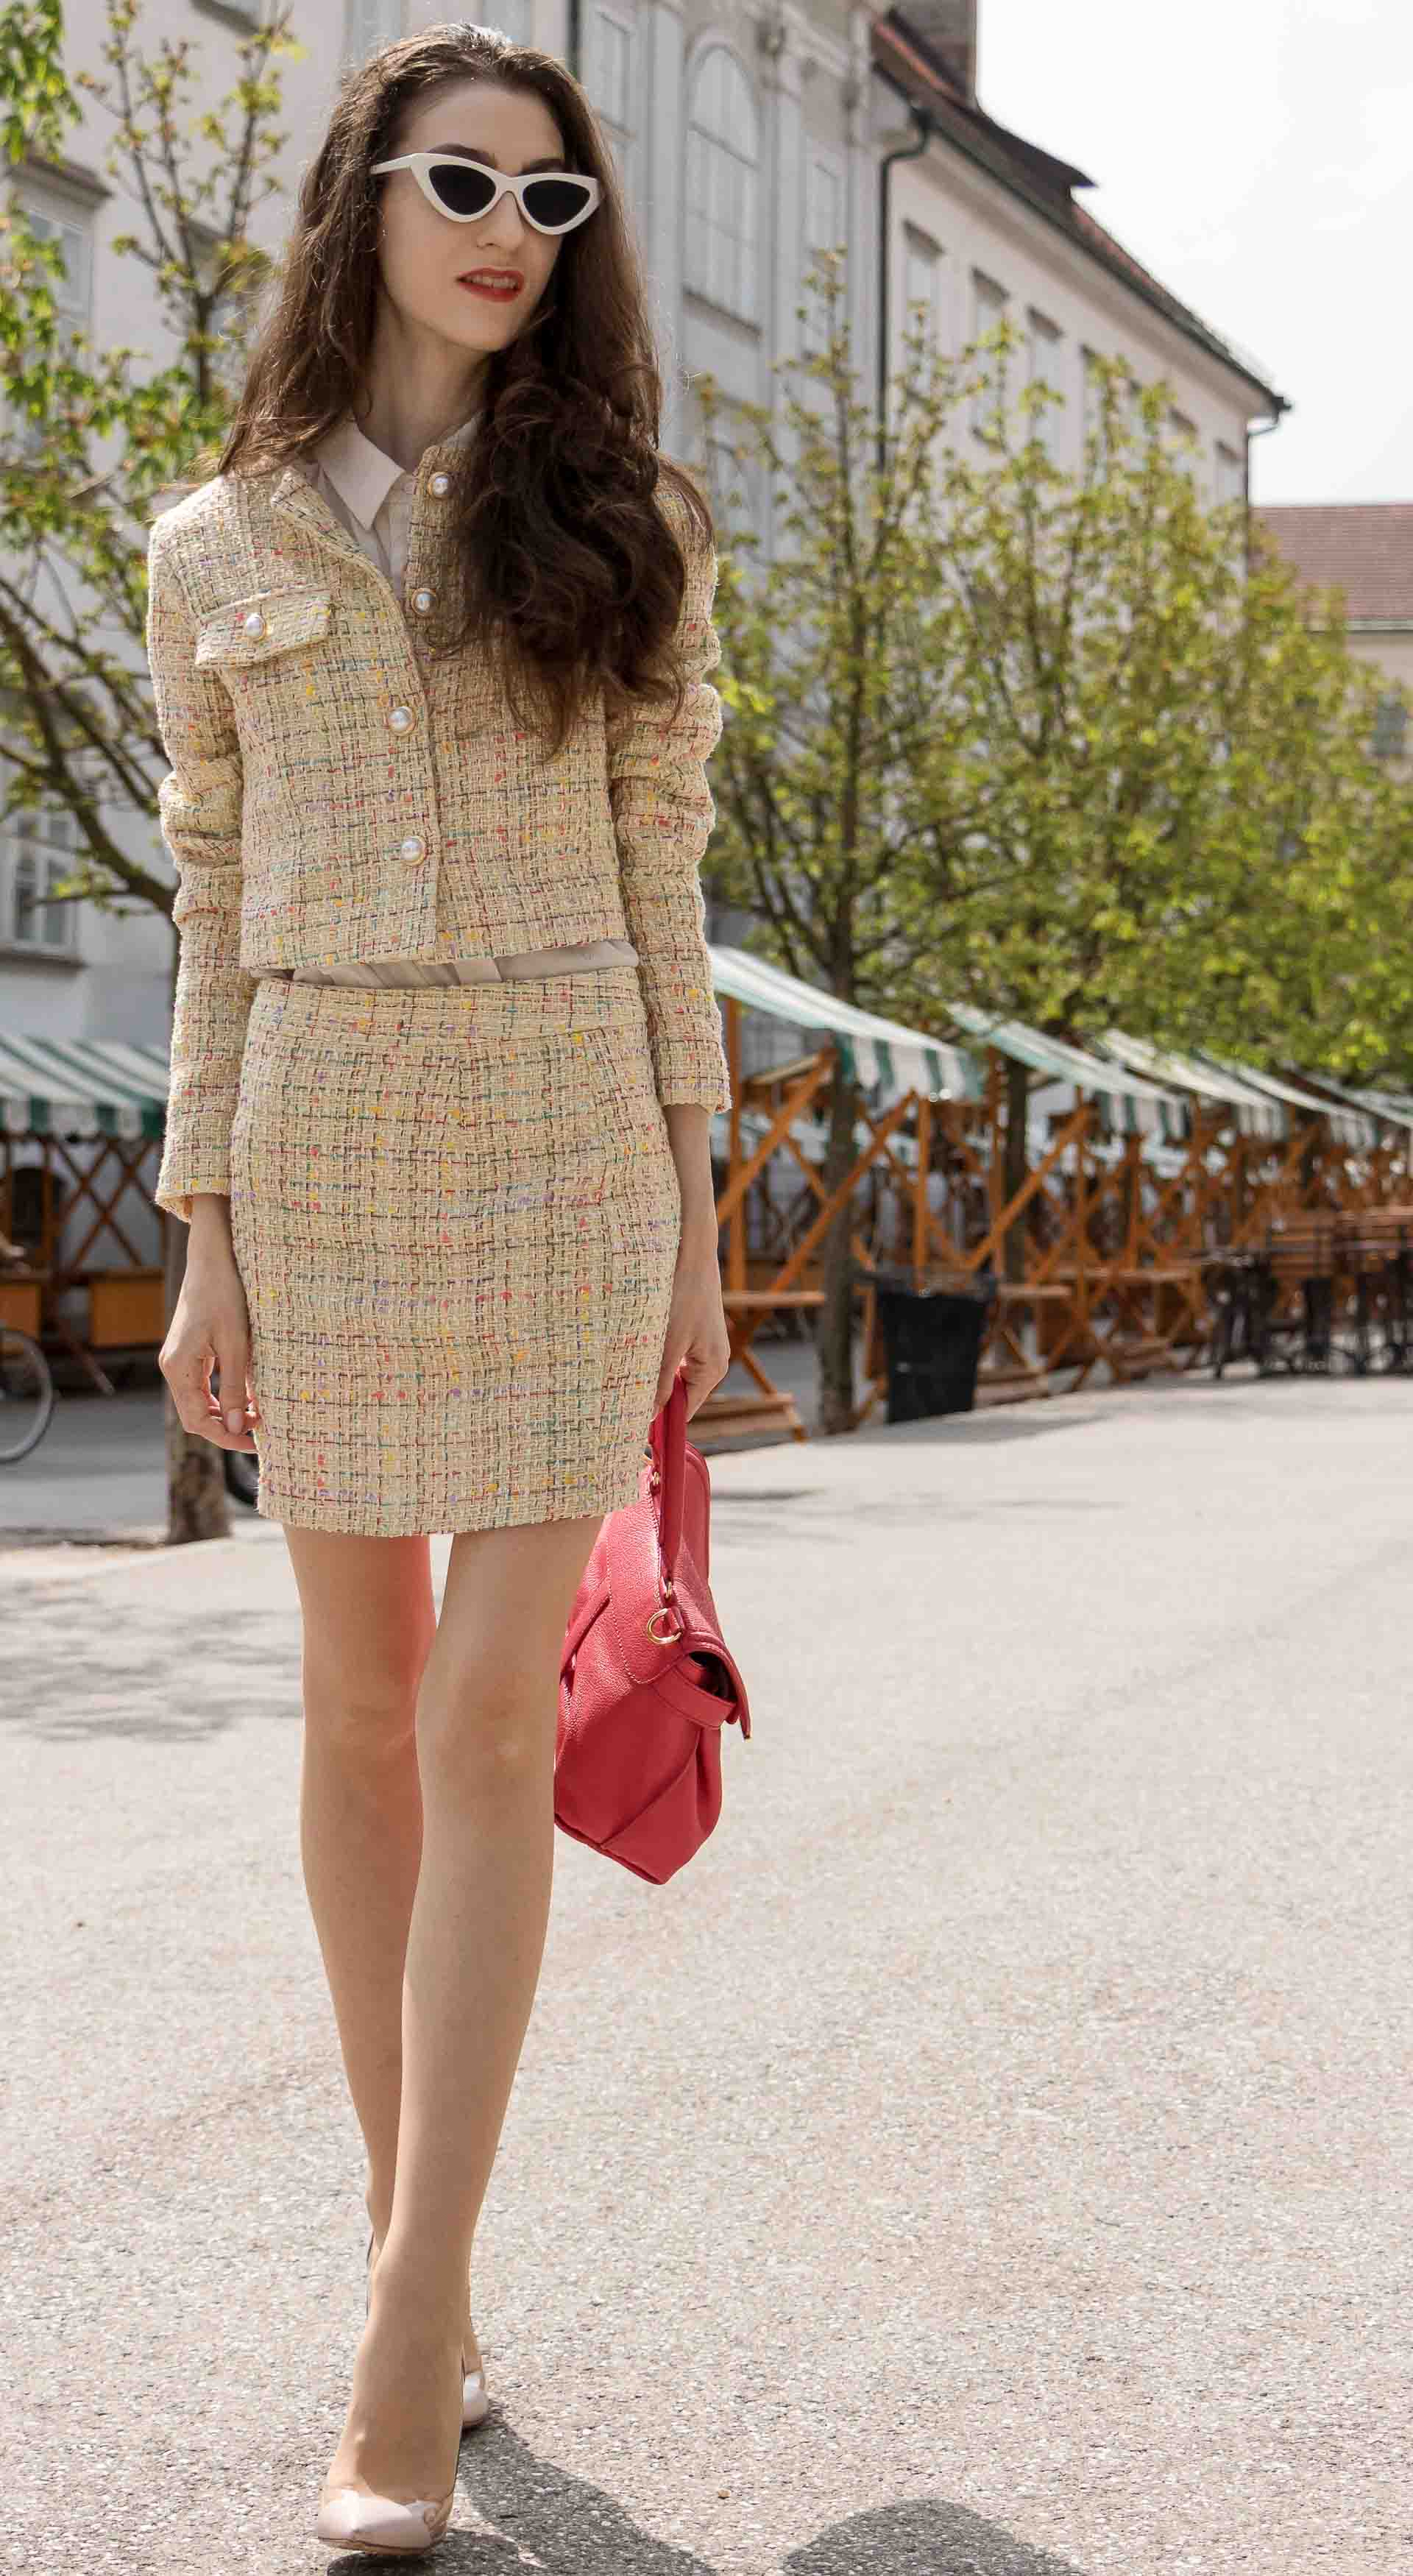 Fashion Blogger Veronika Lipar of Brunette from Wall Street wearing Storets yellow tweed mini skirt suit, Gianvito Rossi plexi pumps, See by Chloe pink top handle bag, Adam Selman x Lespecs white Lolita sunglasses on the street in Ljubljana